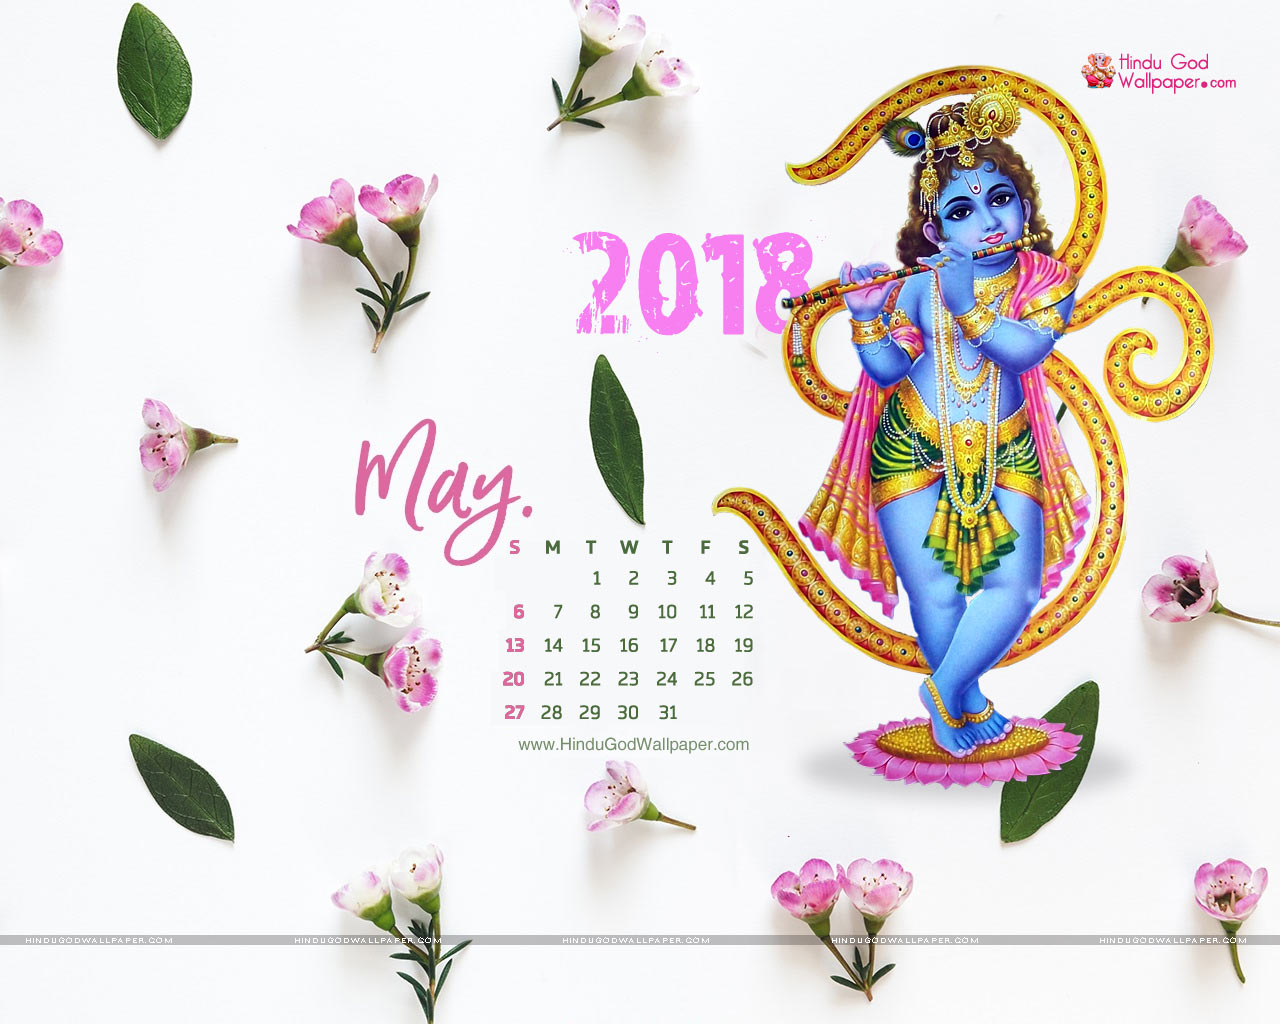 May 2018 Wall Calendar Wallpaper